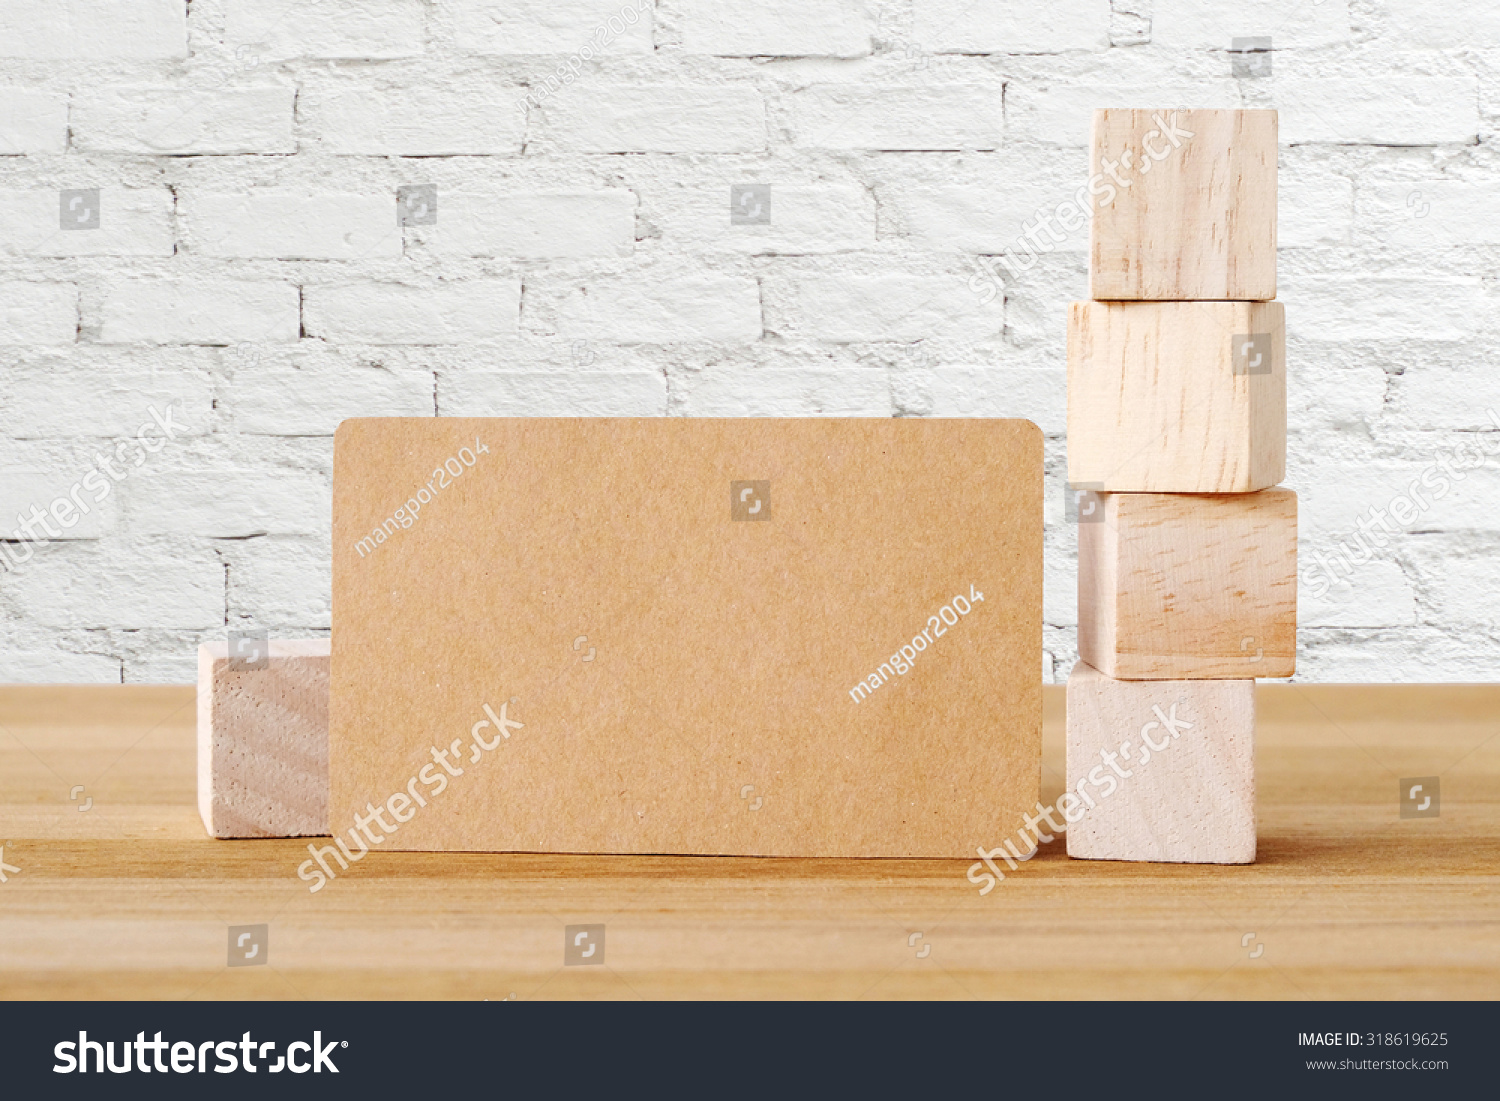 Blank Recycle Paper Business Card Wooden Stock Photo 318619625 ...